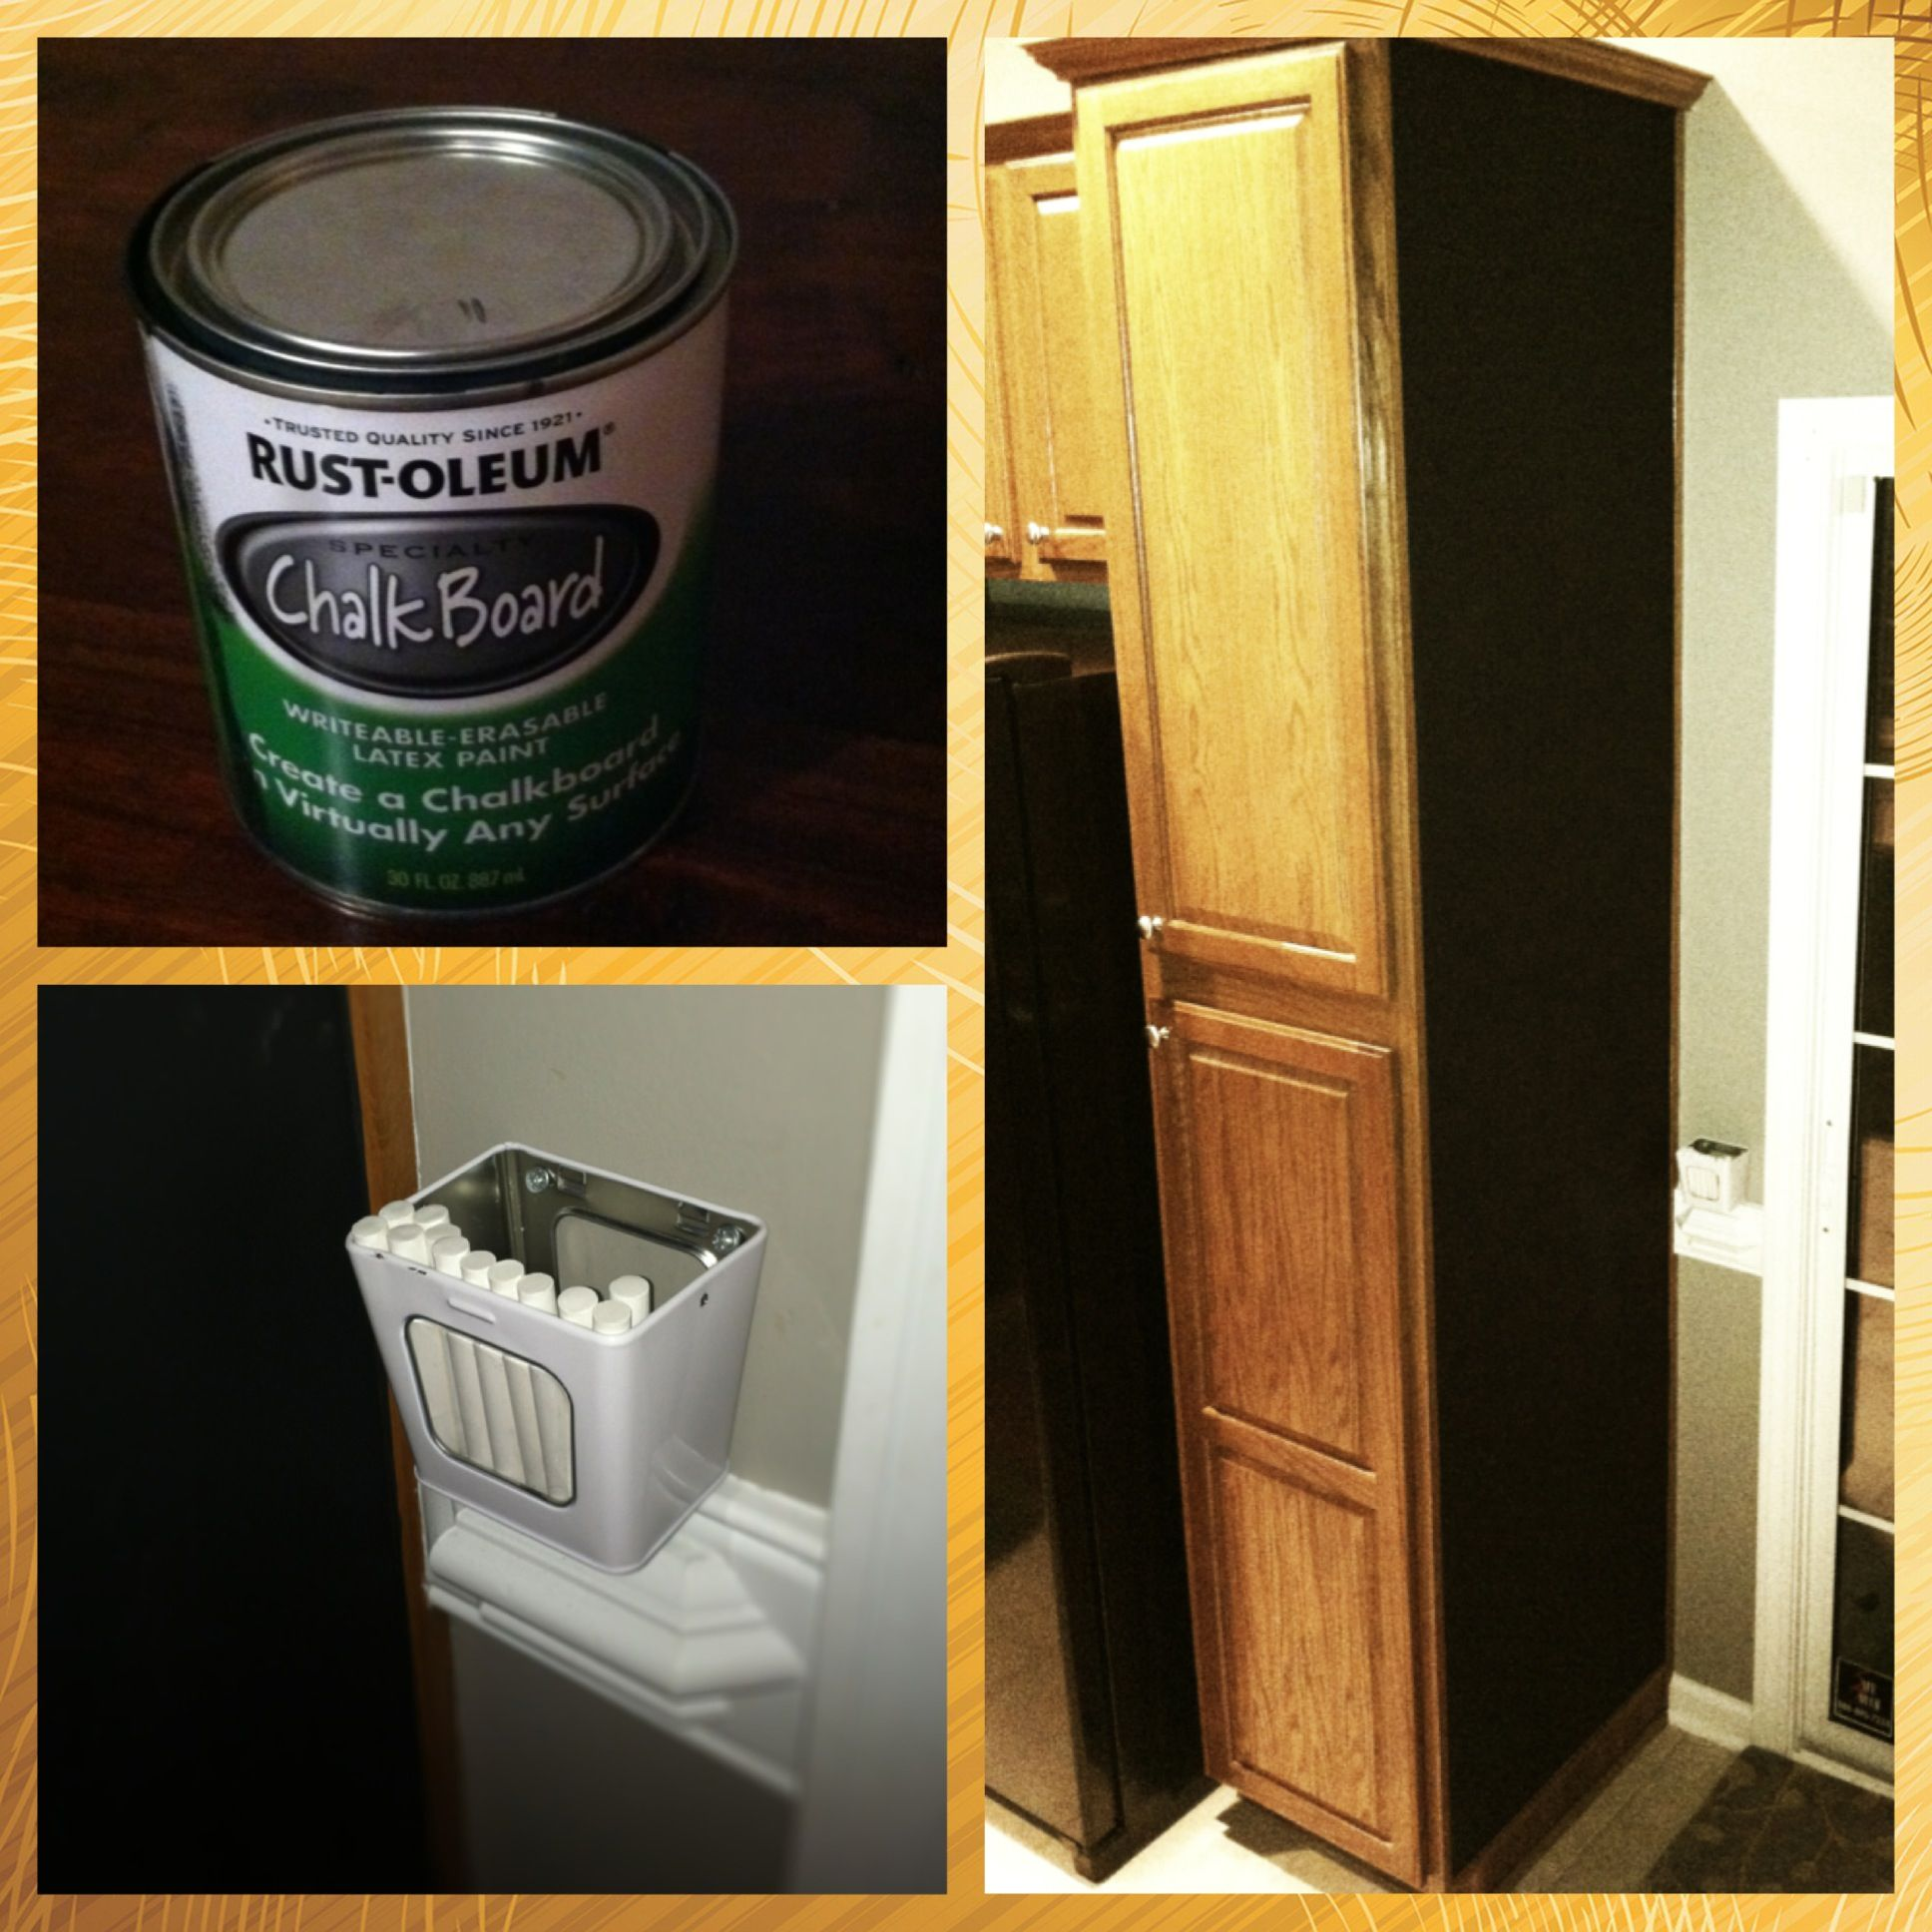 Chalkboard Painted Cabinet I Painted The End Of Our Kitchen Cabinets With Chalkboard Paint To Use As A Chore Painting Cabinets Home Upgrades Chalkboard Paint